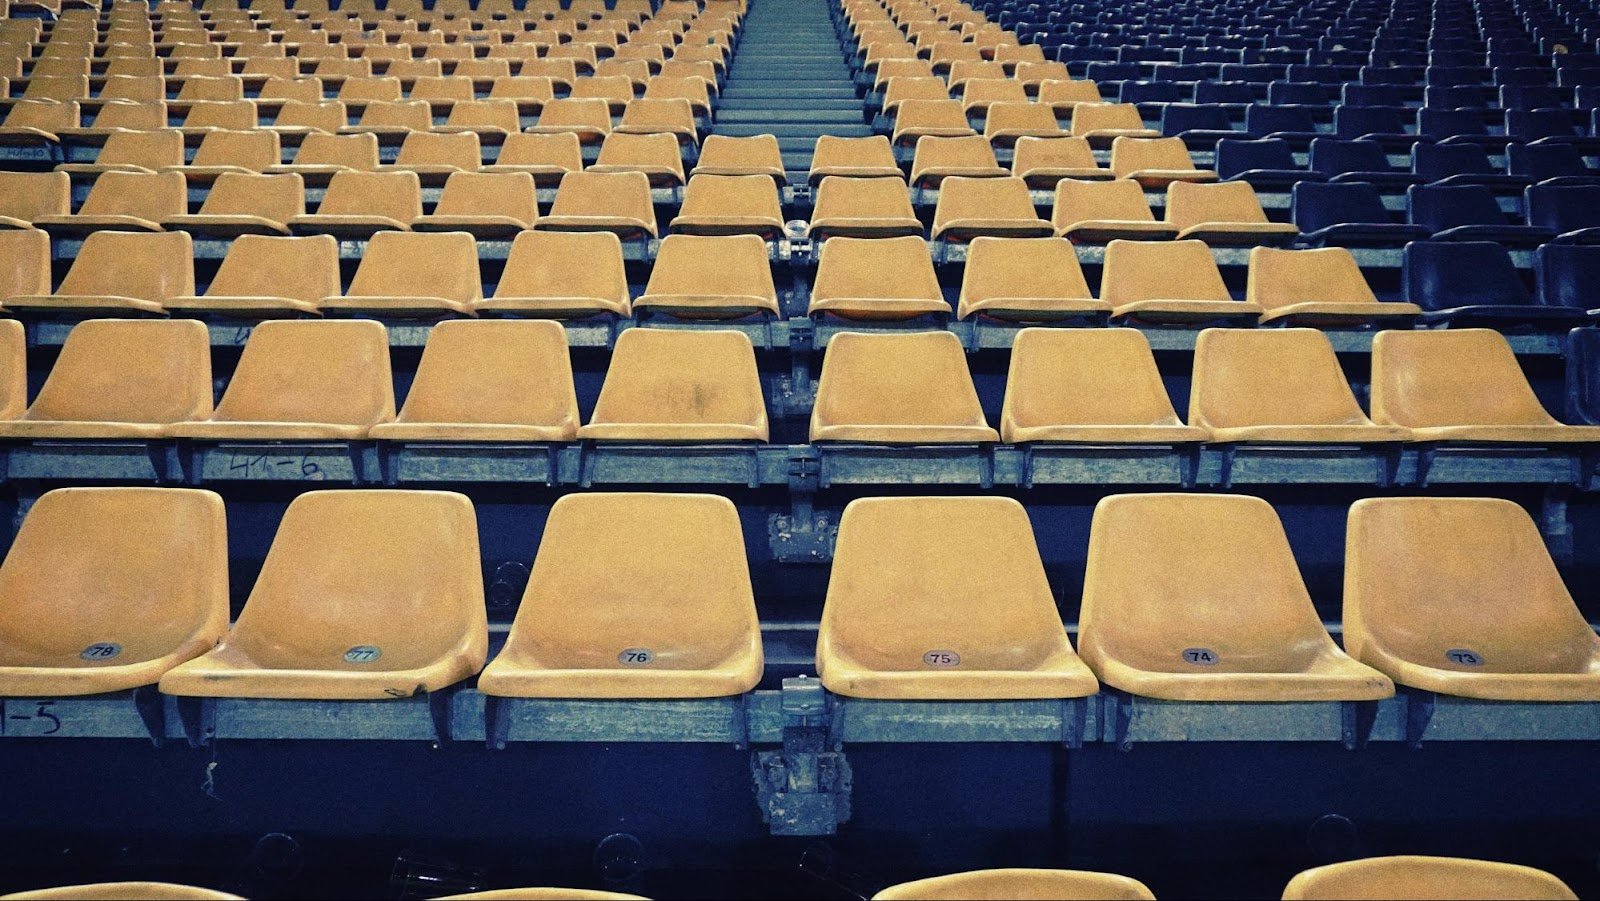 Empty seats at a music venue